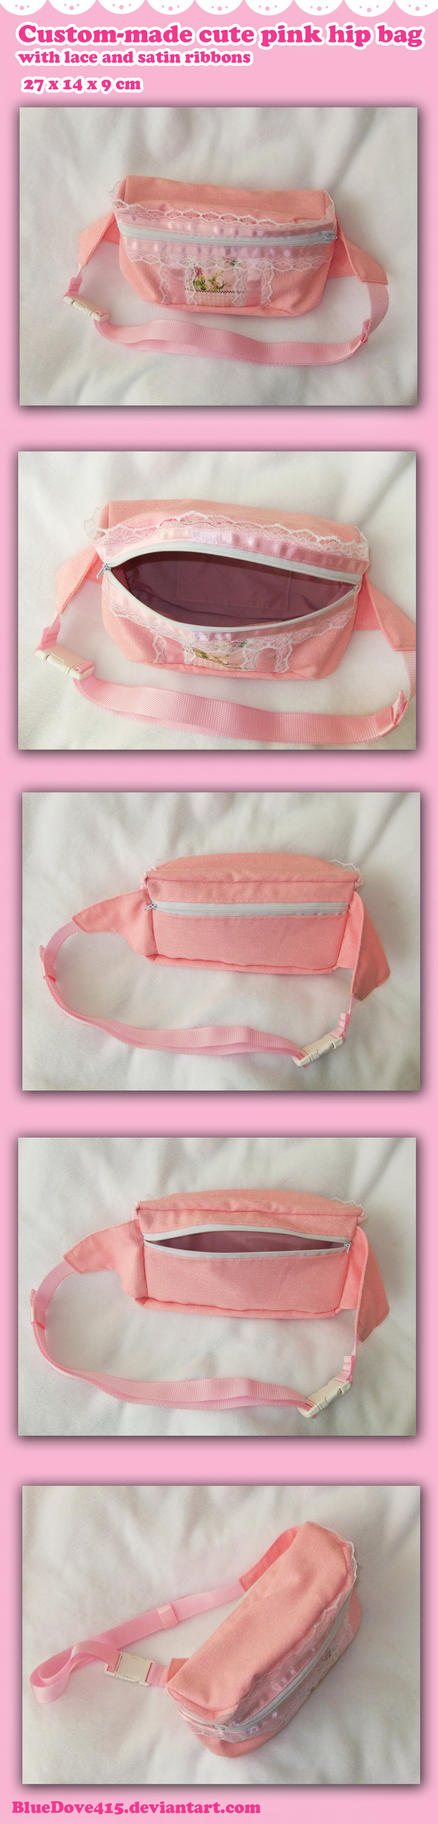 Custom-made cute pink hip bag by BlueDove415